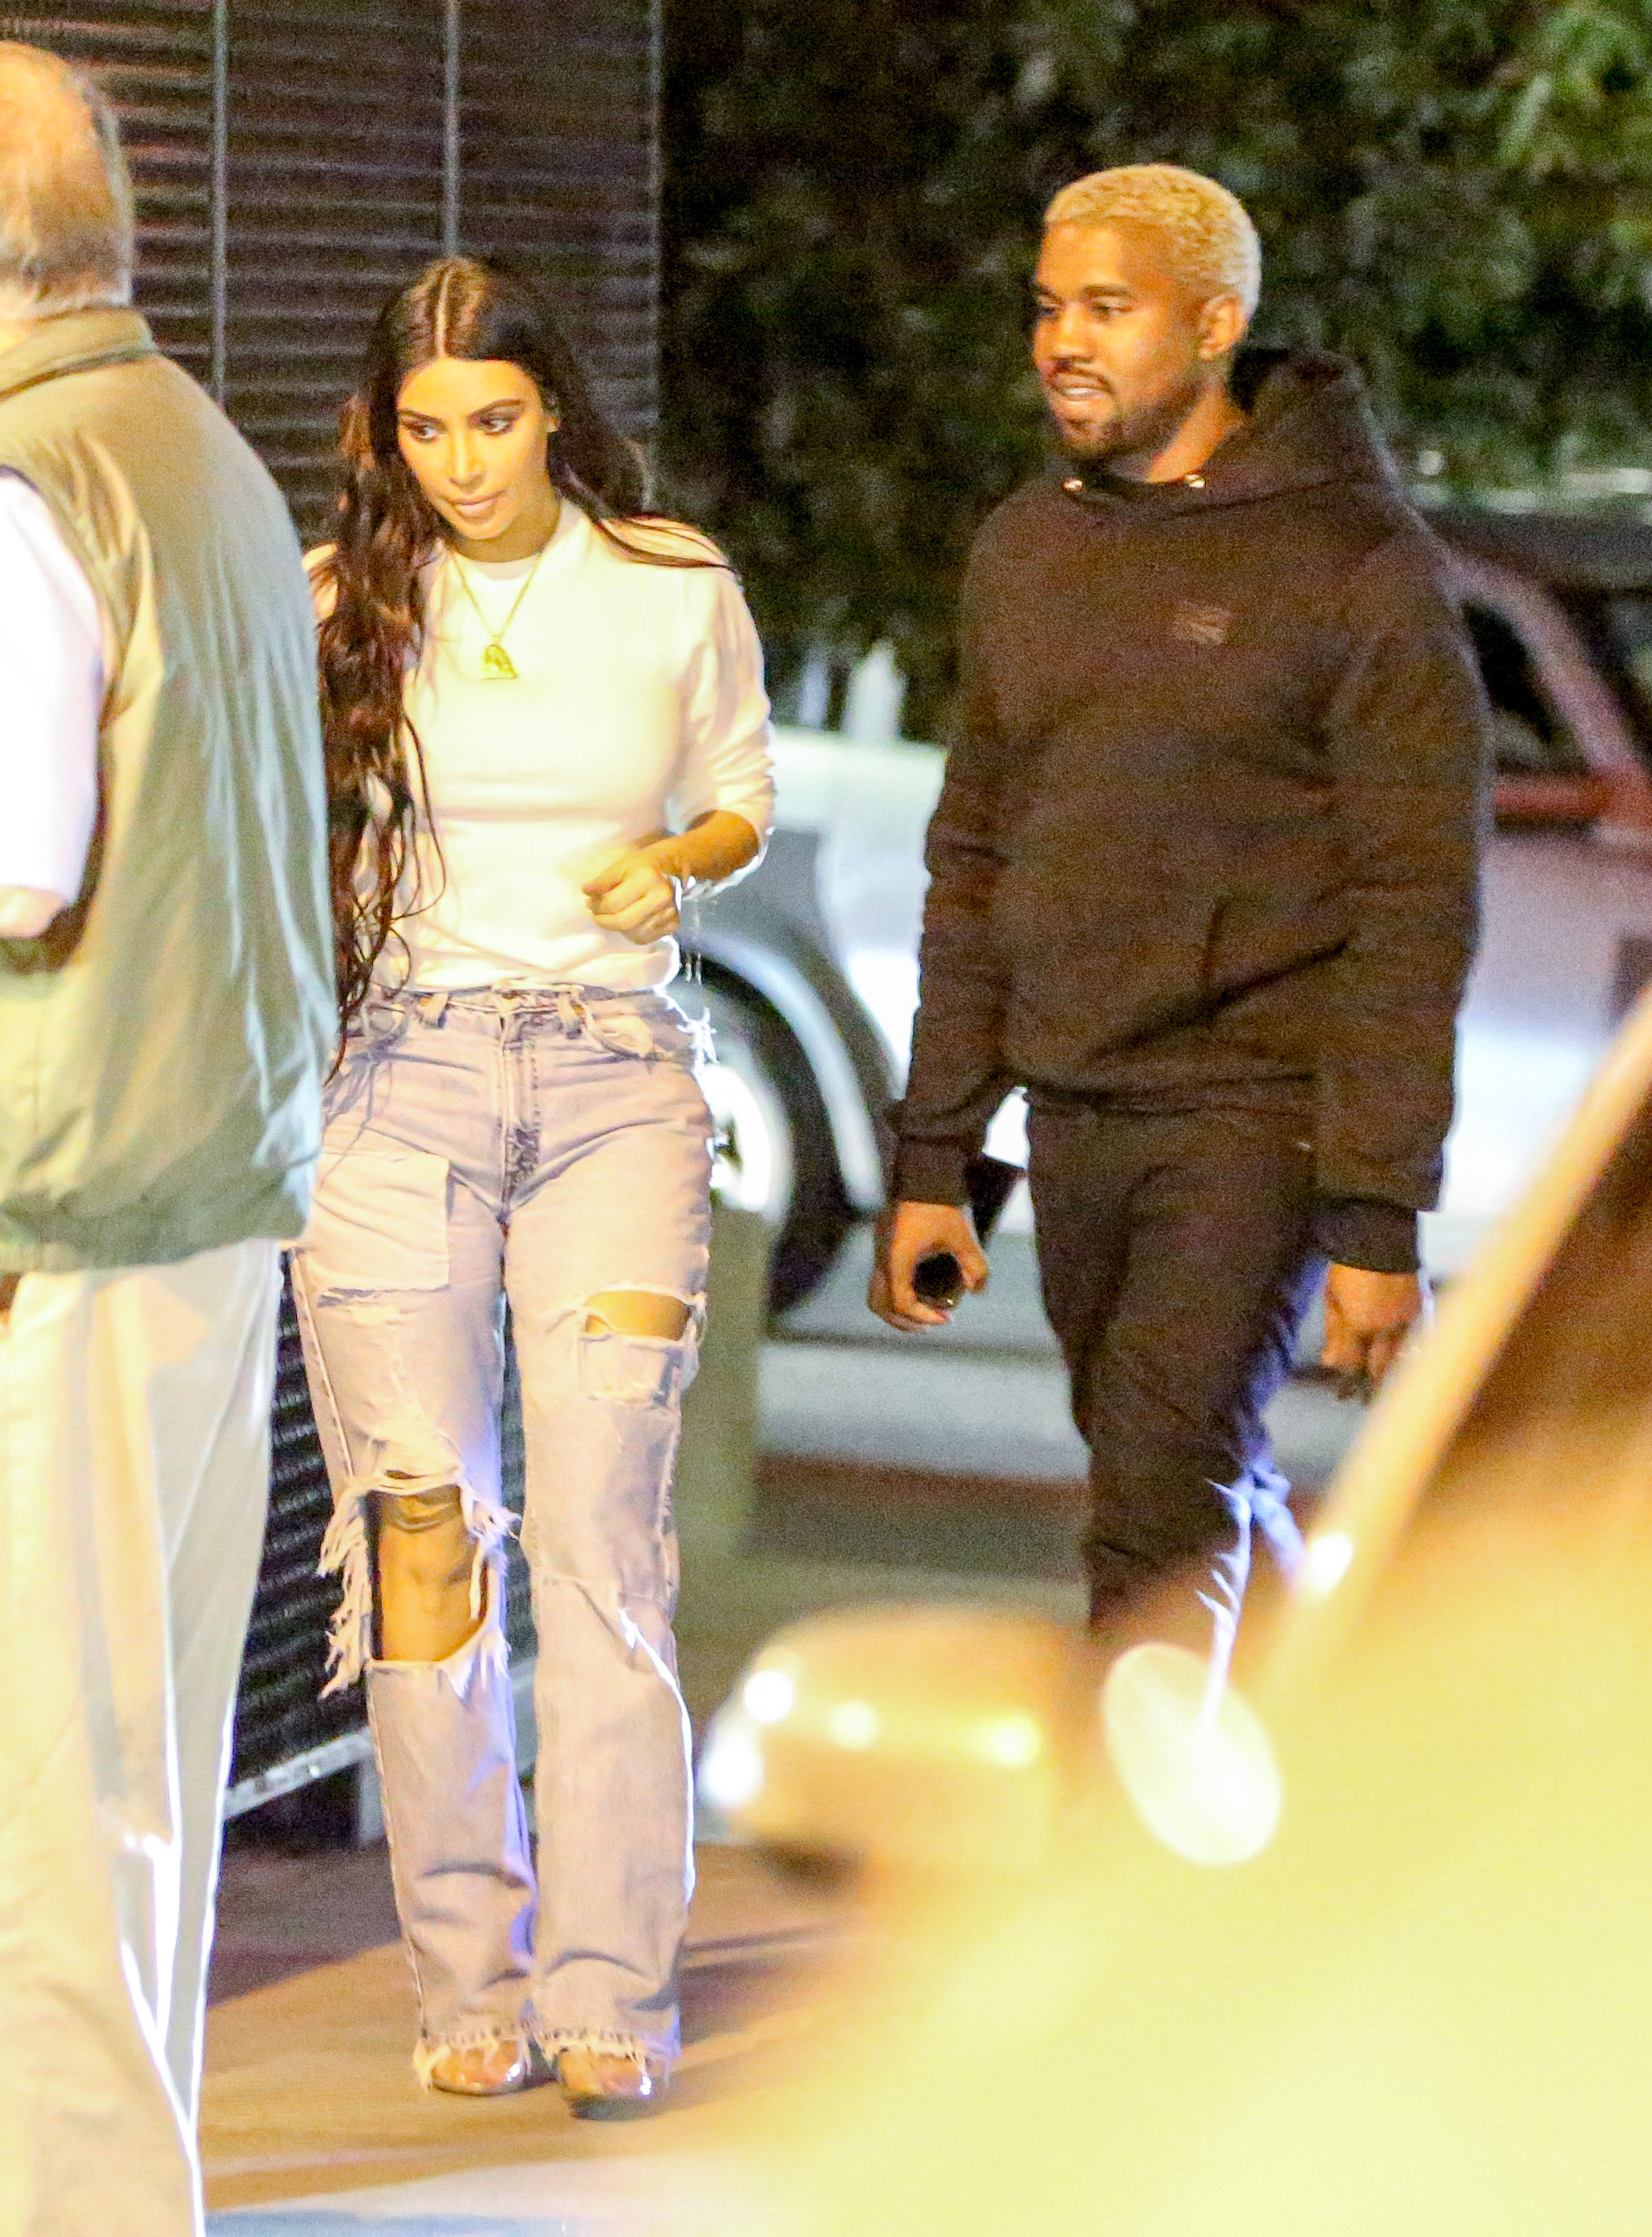 EXCLUSIVE Kim Kardashian Goes For A Relaxed Dinner Date With Kanye West After Busy Day